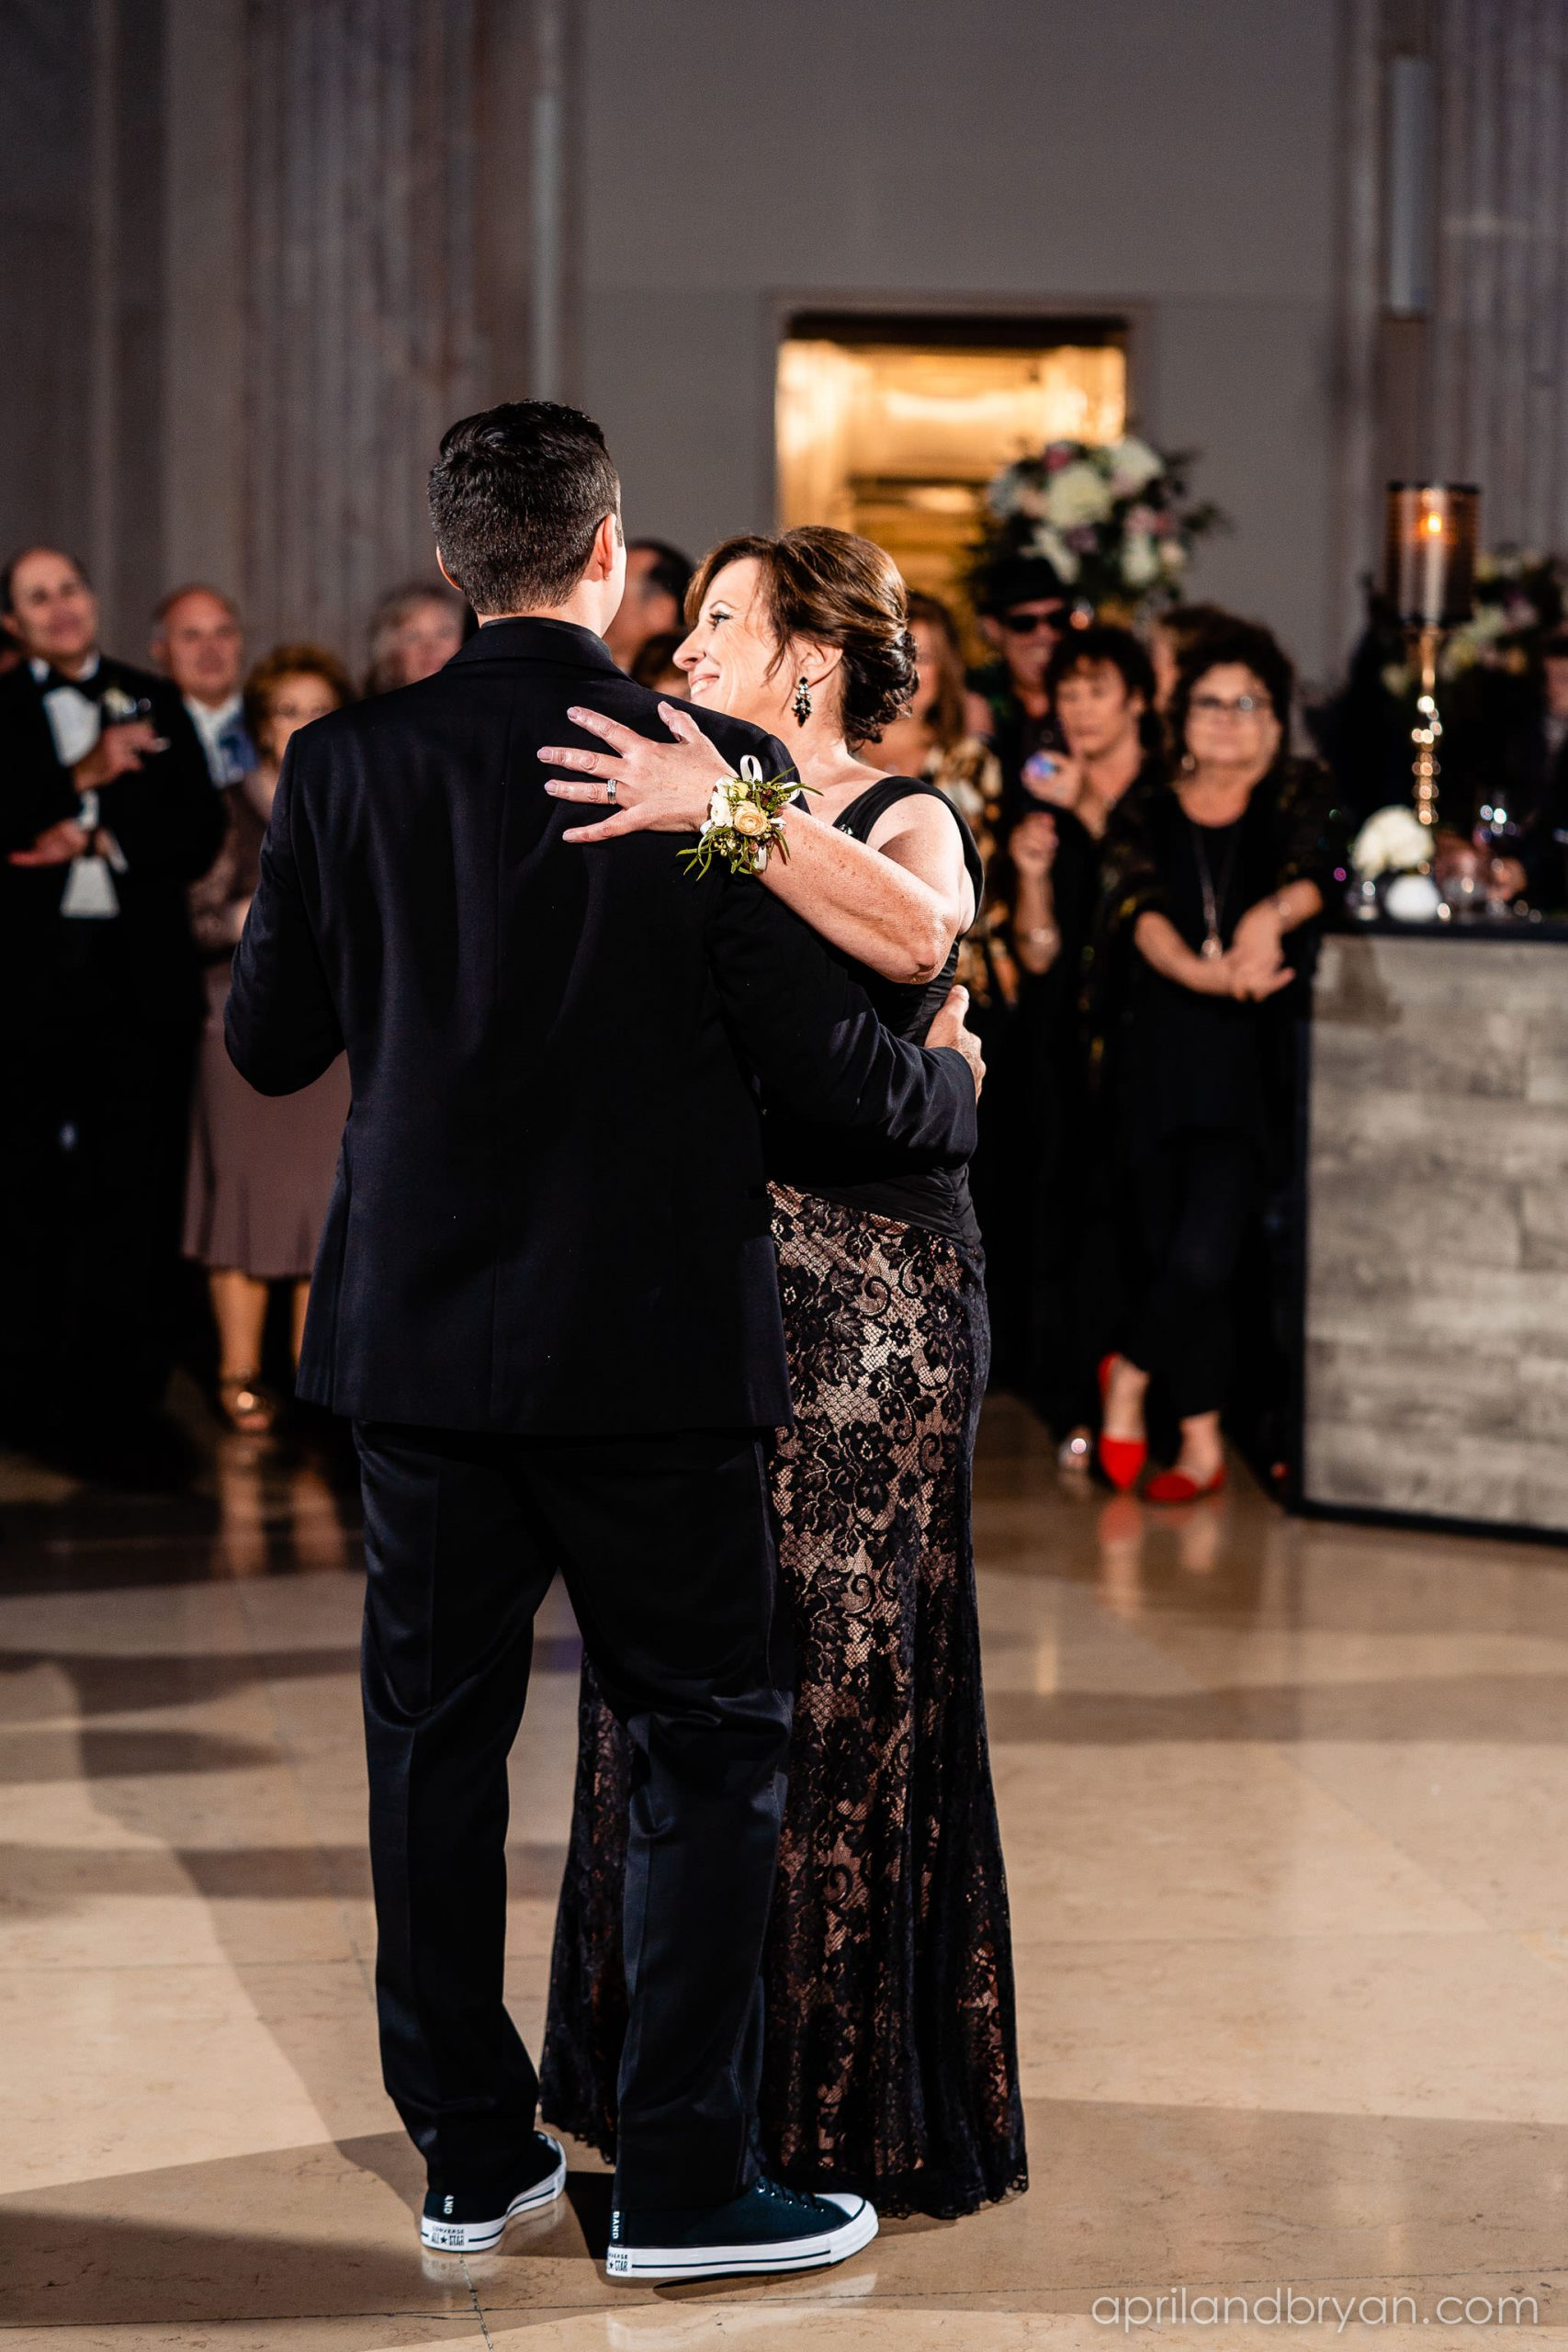 A mother and son dance, featuring some Chucks started off the celebration at the Franklin Institute in Philadelphia. Captured by April & Bryan Photography. Featured on Dream Weddings.